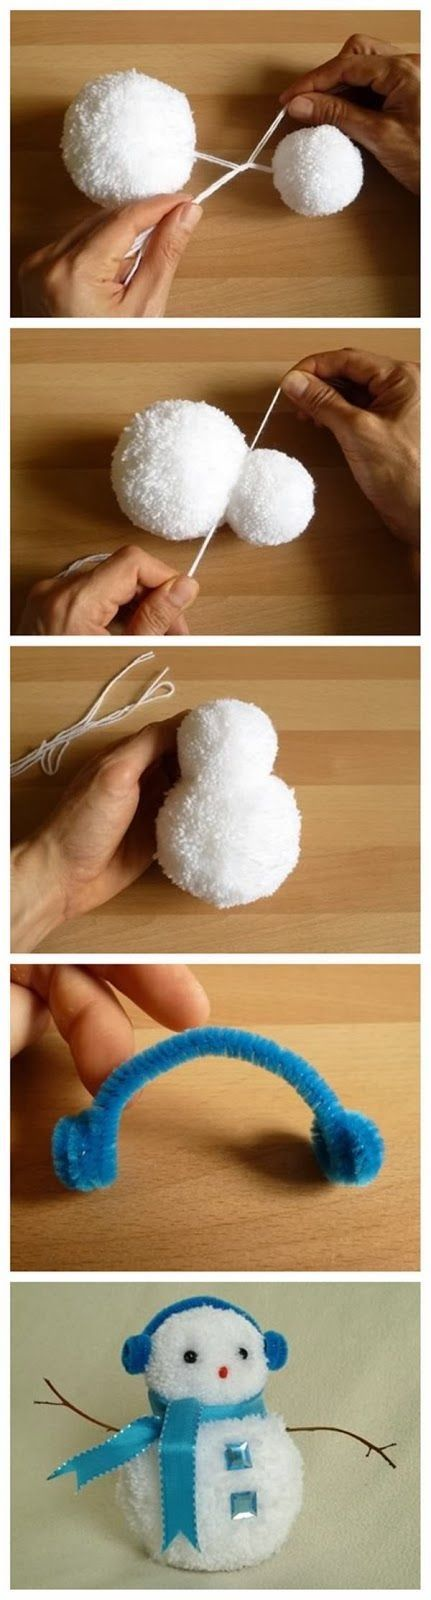 DIY Pom Pom snowman (can figure this out from the photos)